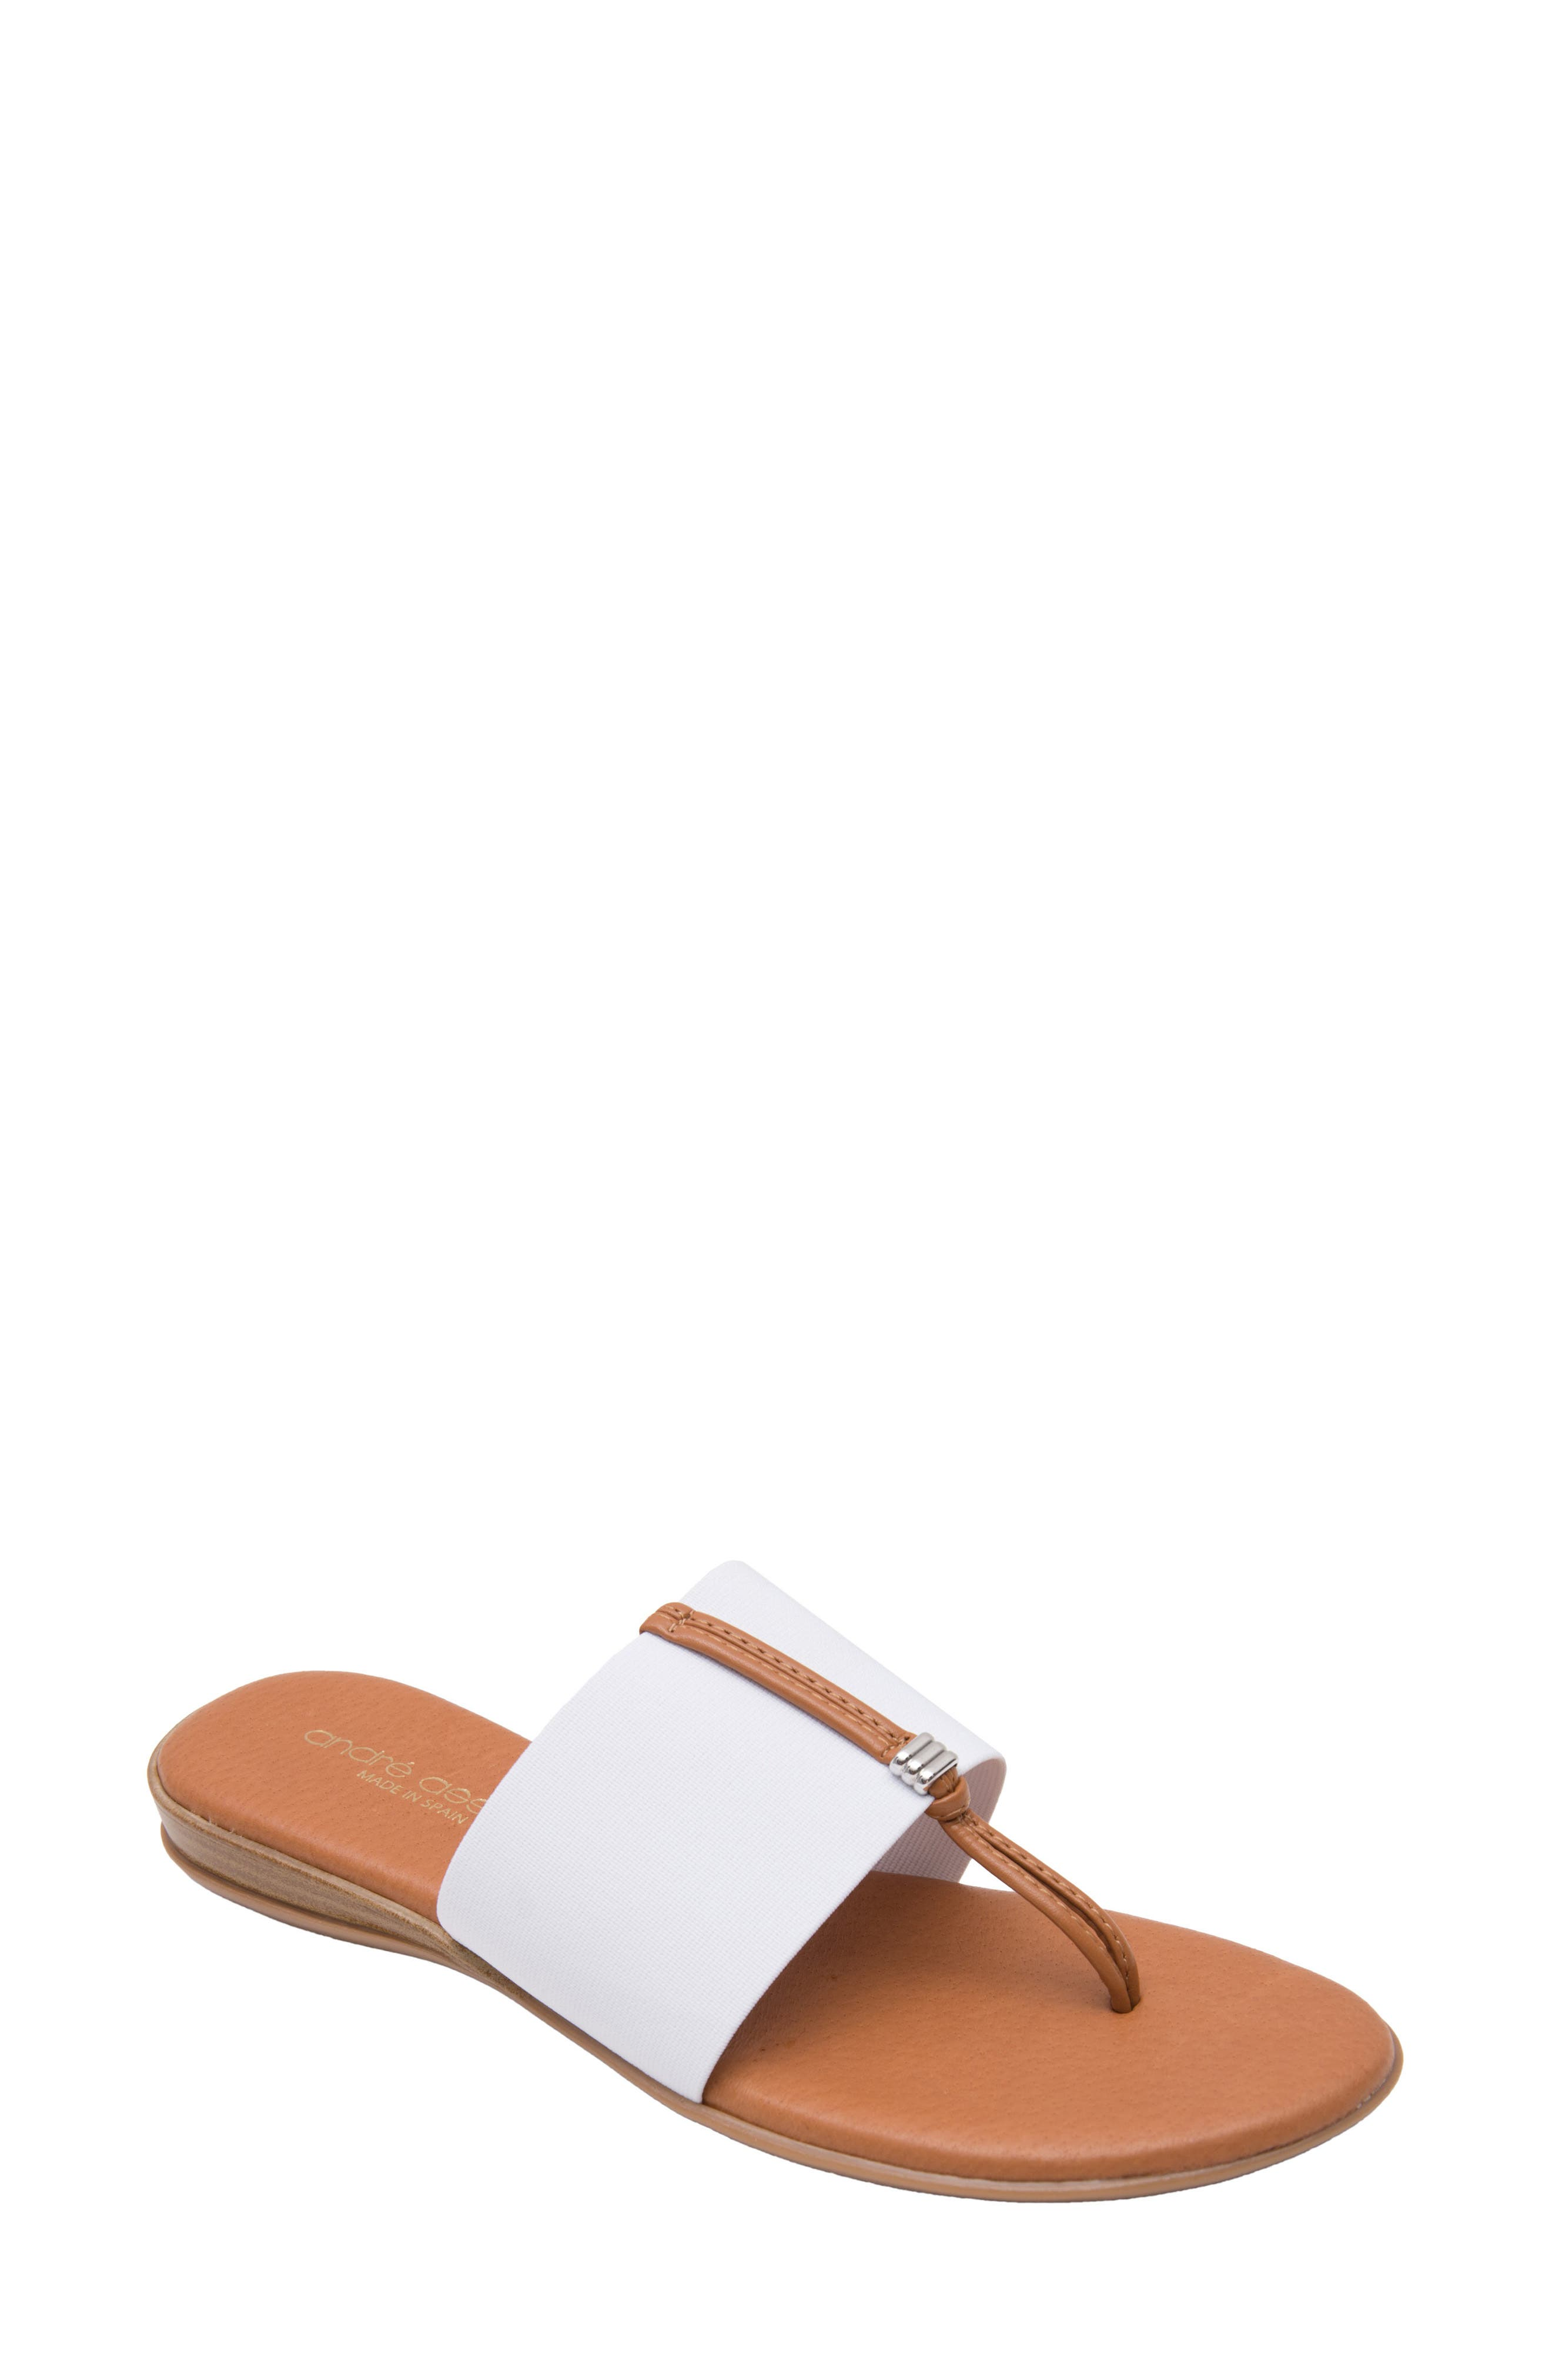 ANDRE ASSOUS Nice Sandal in White Fabric